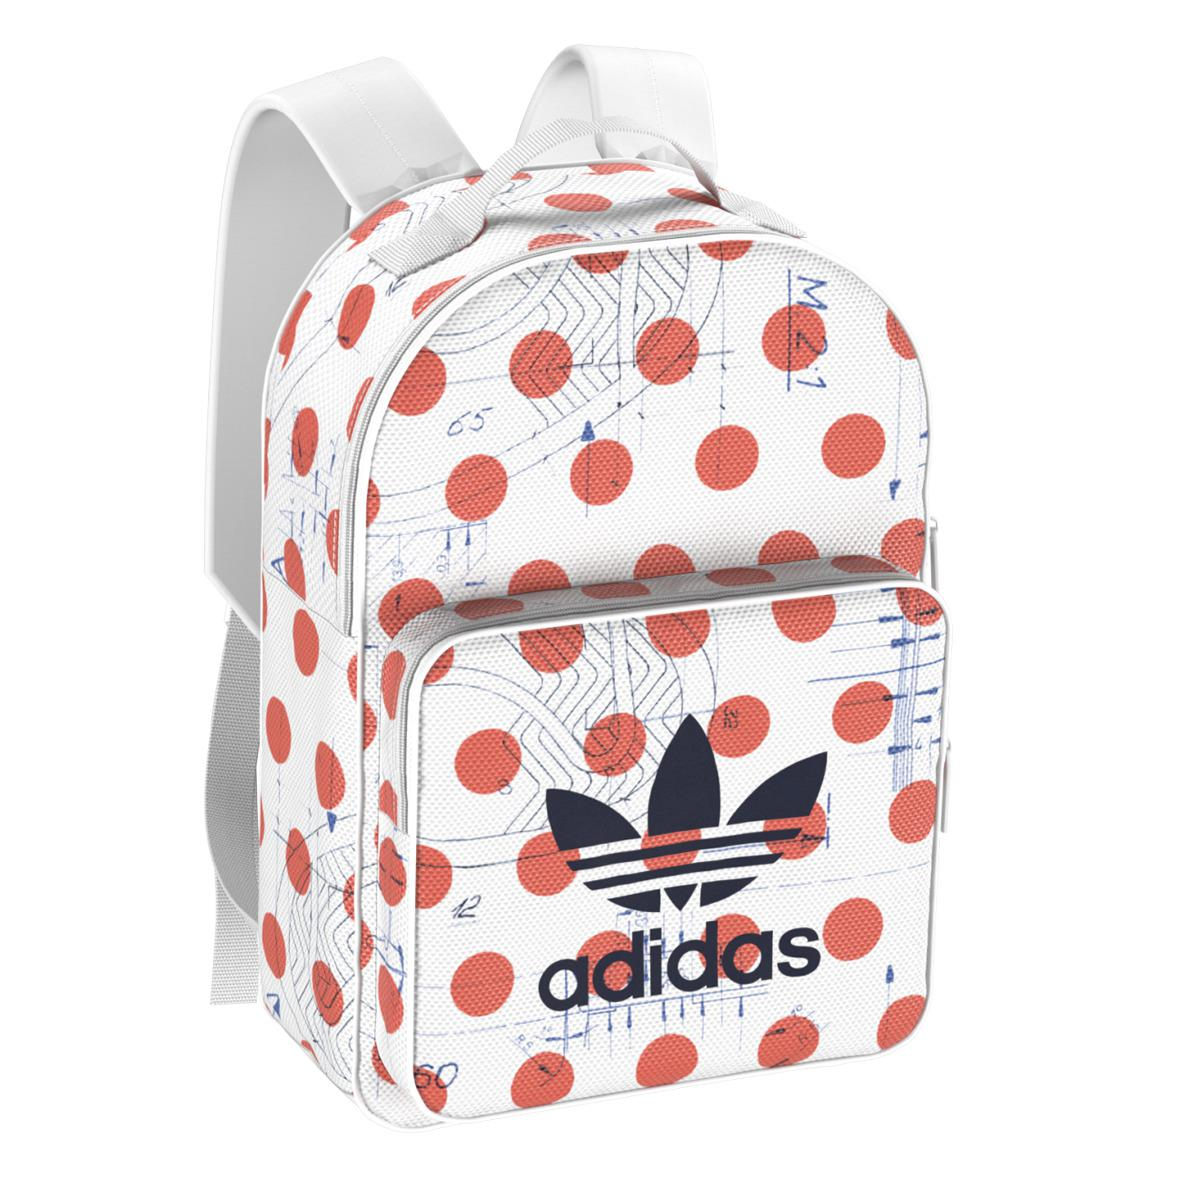 15d90f696b Lyst - adidas Originals Dots Classic Backpack in Red